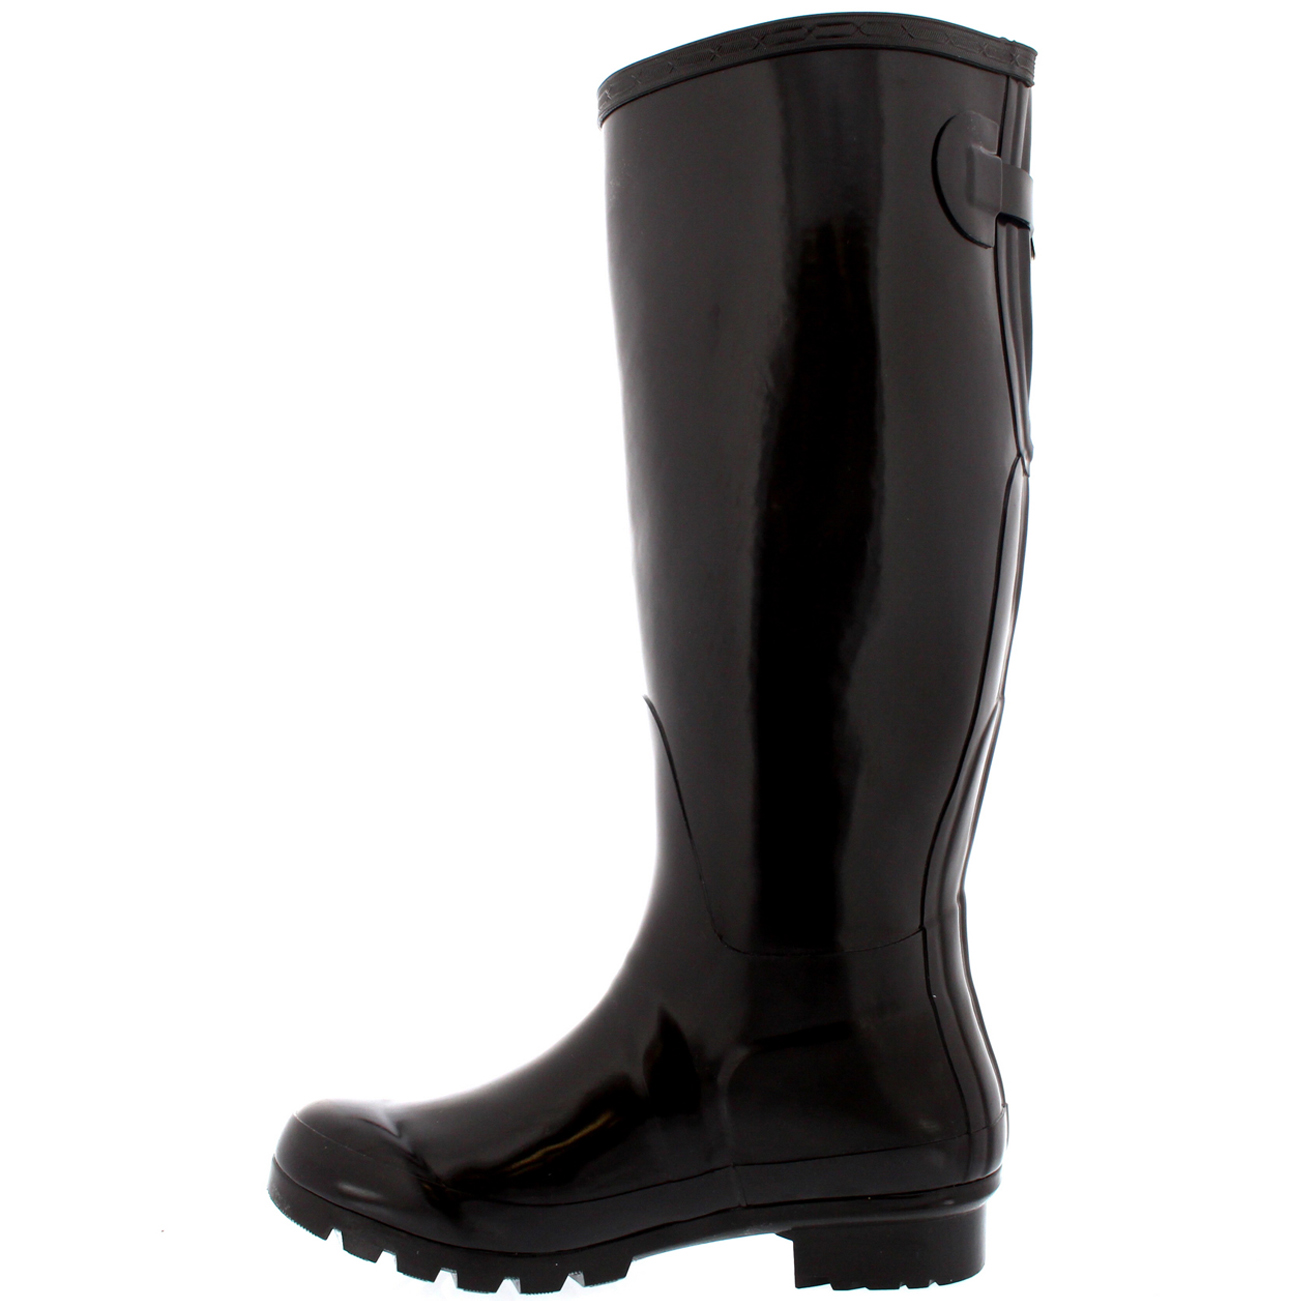 Womens-Original-Tall-Back-Adjustable-Gloss-Rubber-Welly-Knee-High-Boots-UK-3-10